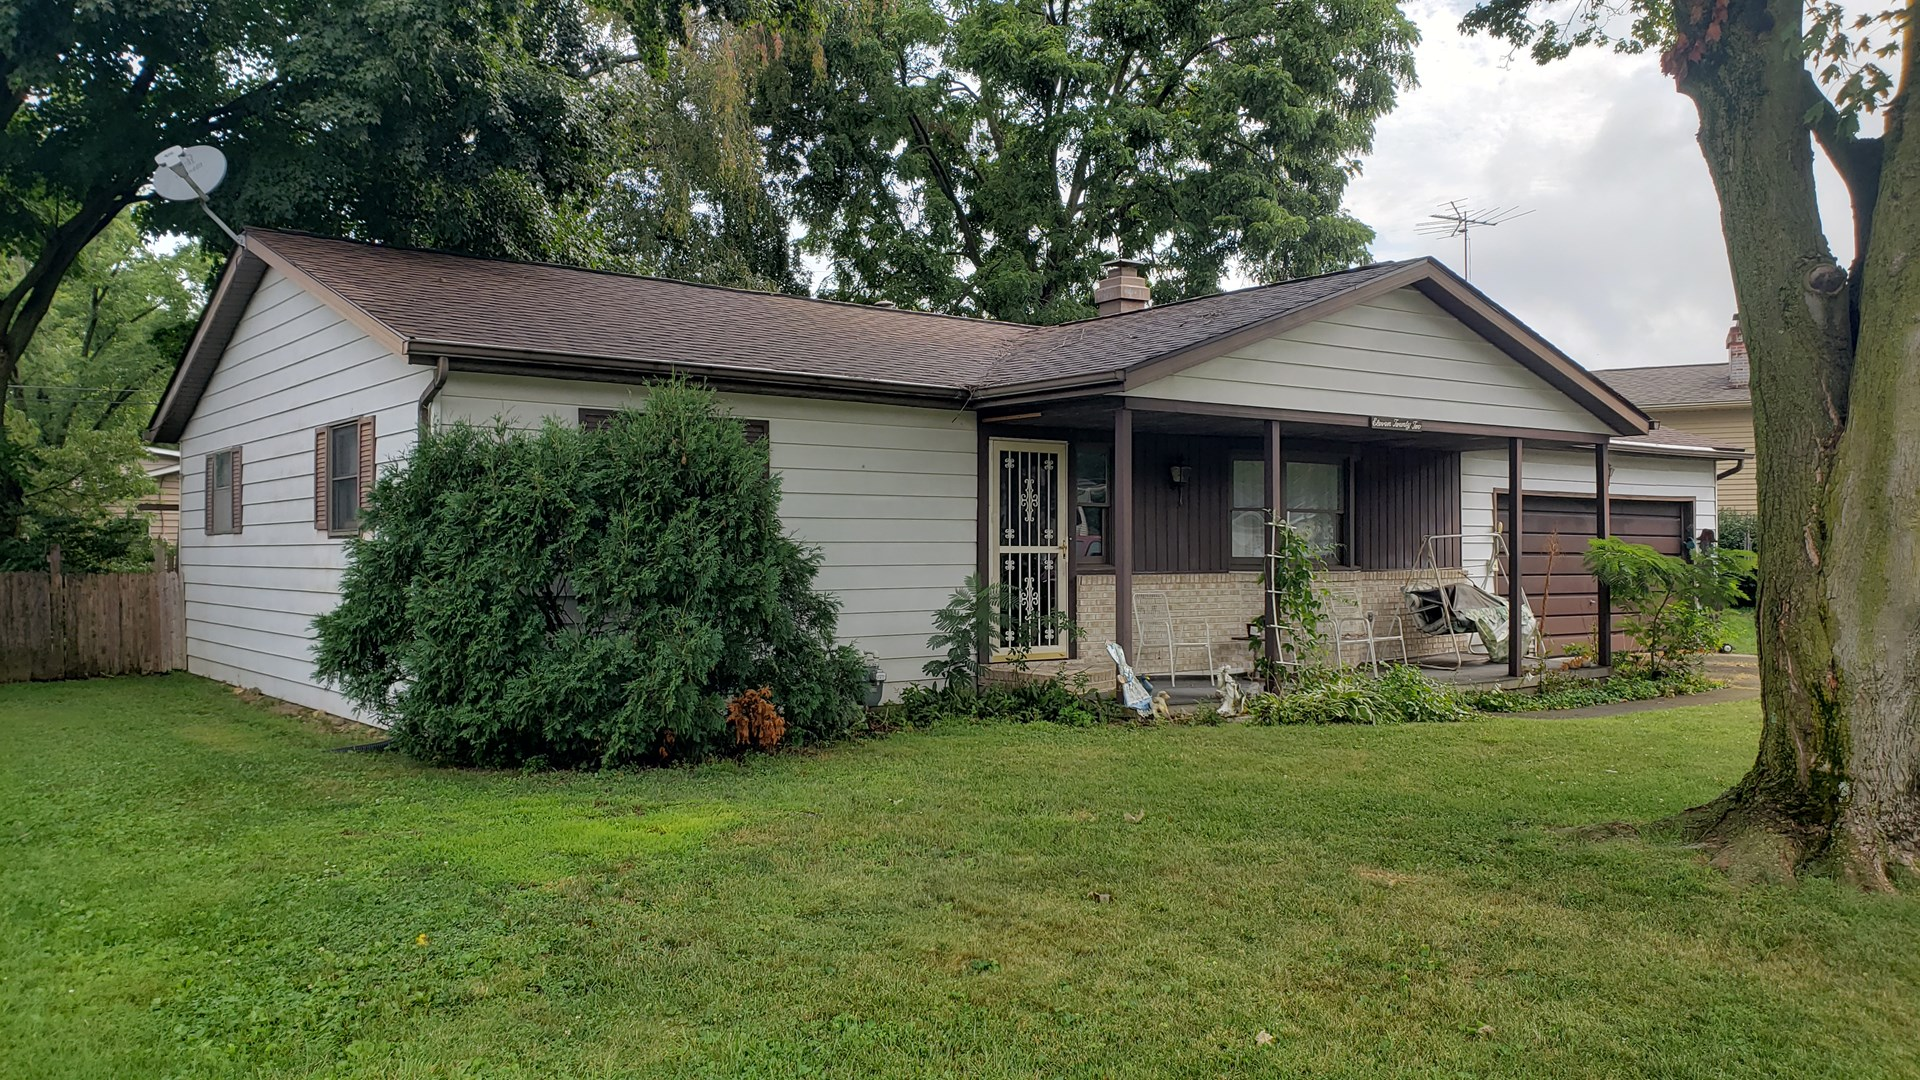 Single Family Home and Pers. Prop. for Auction, Heath, Ohio